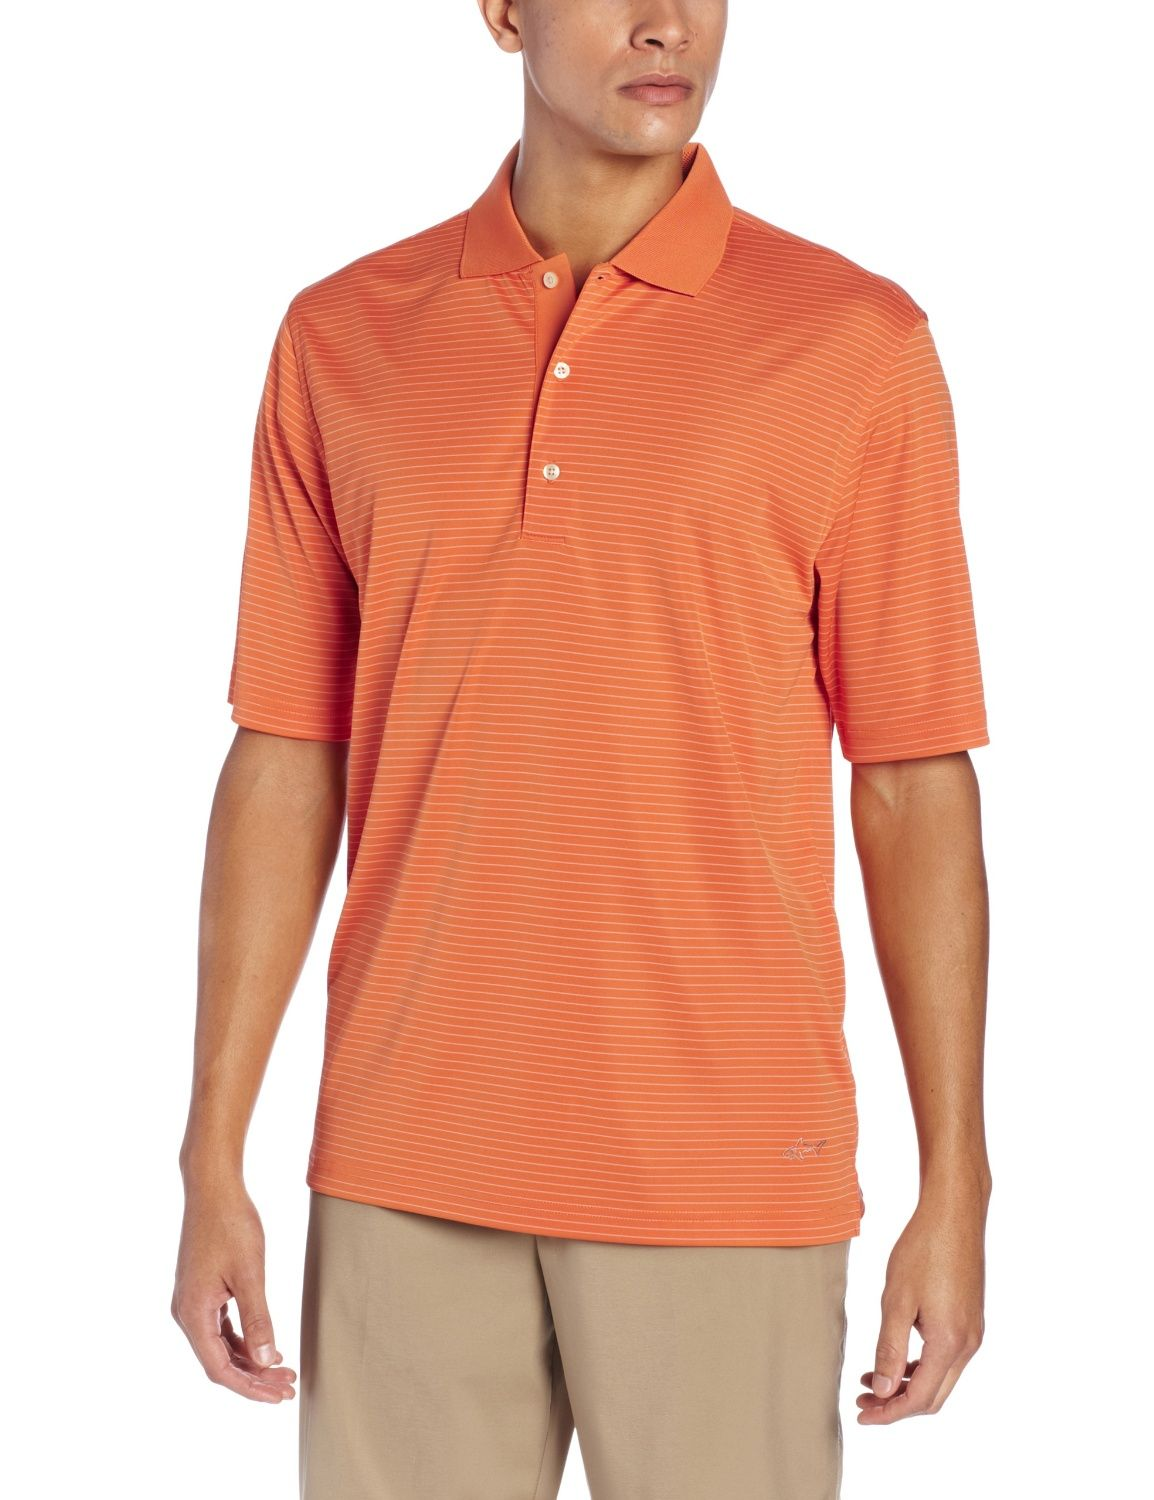 dddde94b2c Made from super fine microfiber yarn this mens fine line stripe golf polo  shirt by Greg Norman offers moisture wicking technology to keep you dry and  UPF ...